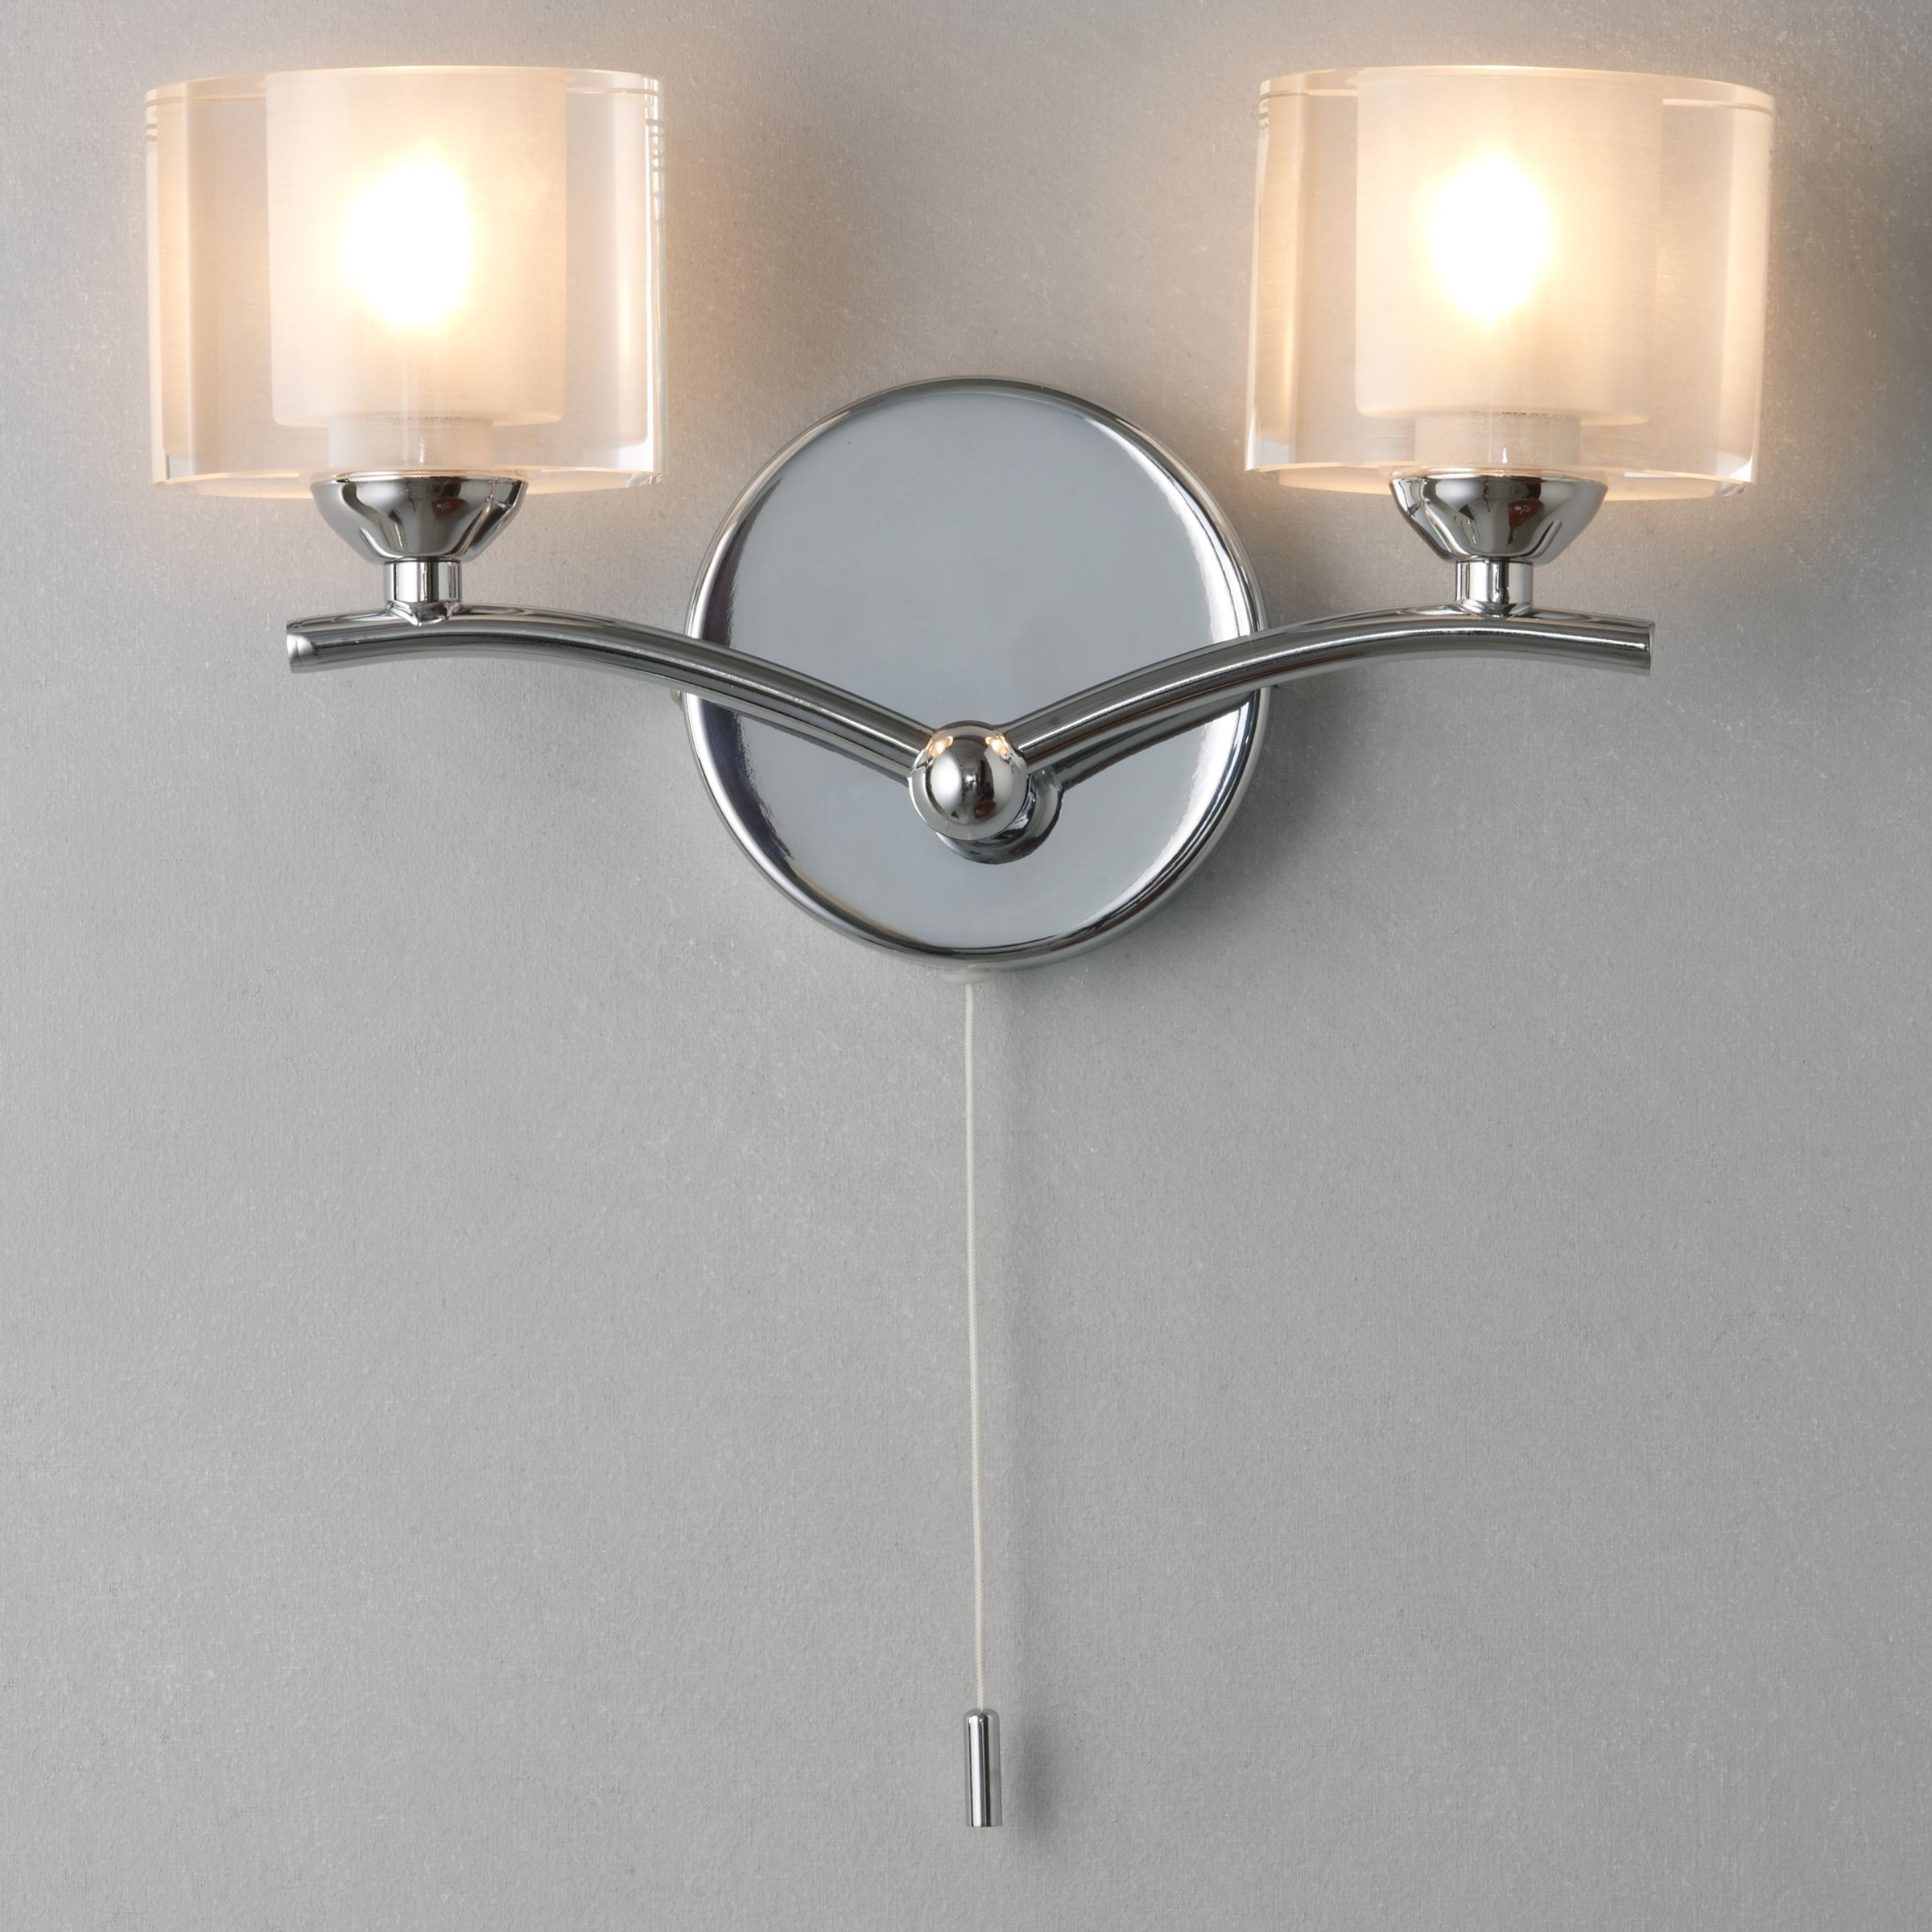 Amalfi Wall Light John Lewis : john lewis wall lights reviews